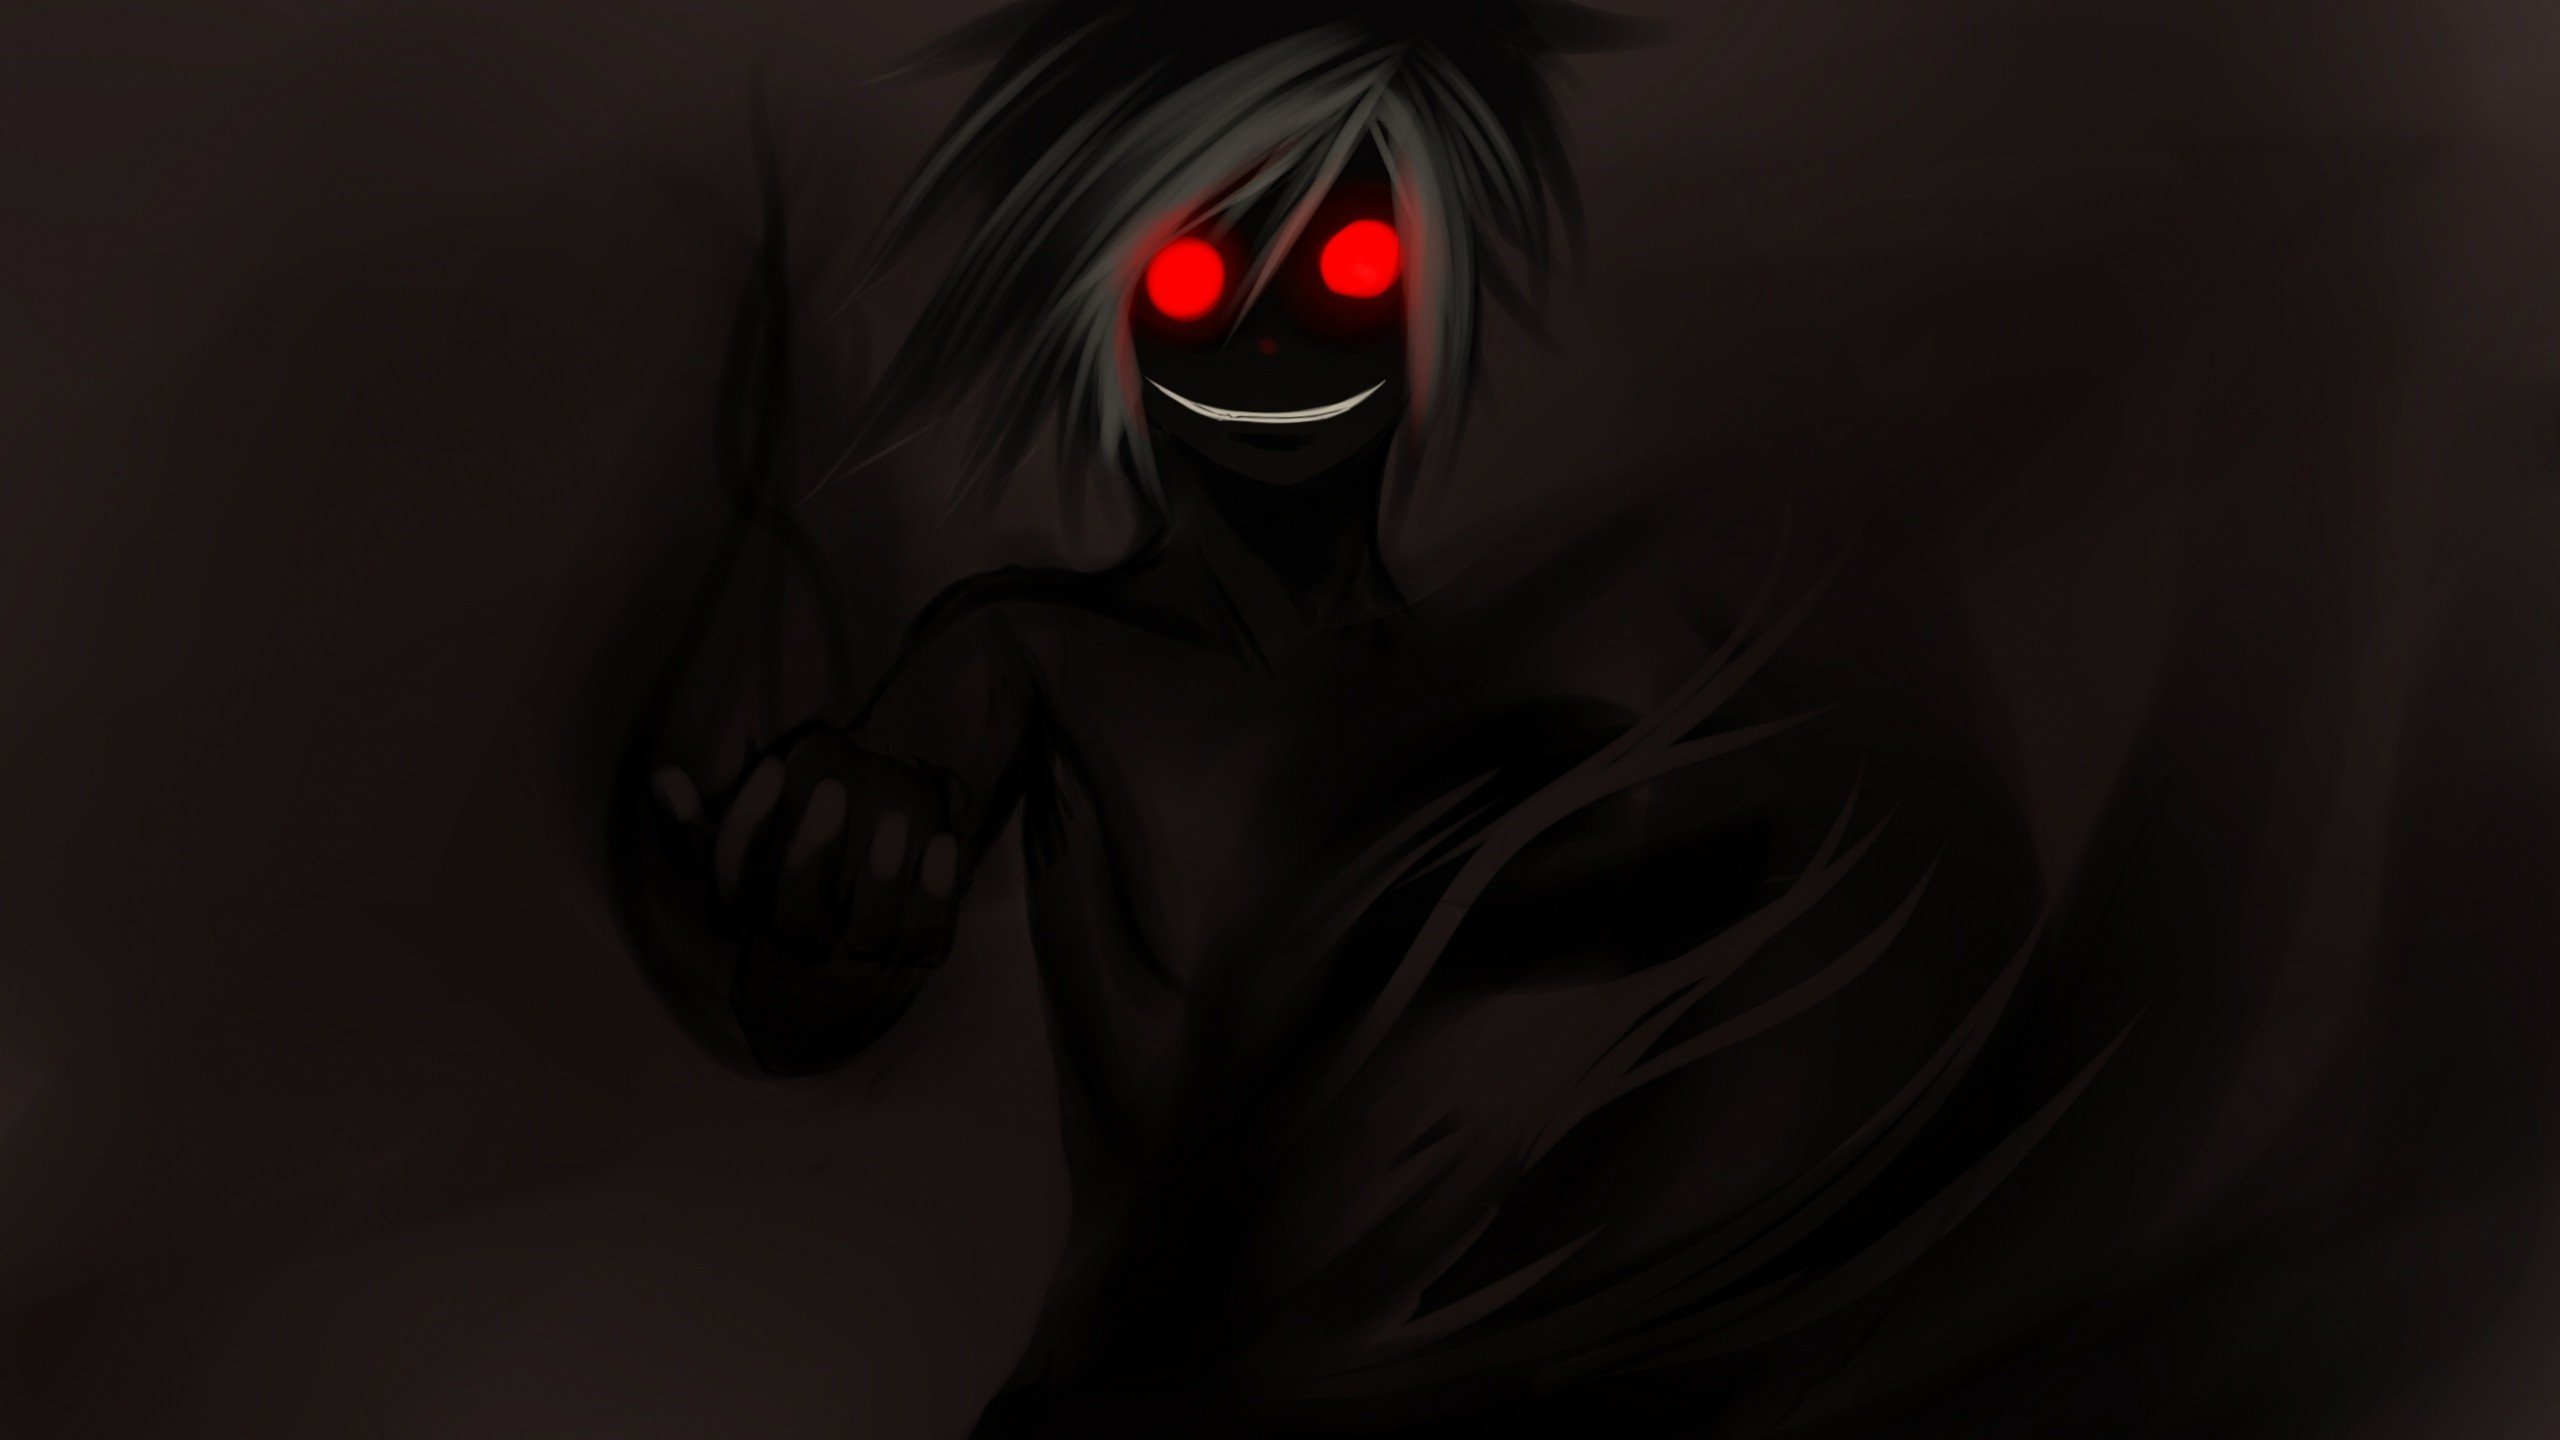 Demon Dark Red Eyes Anime Boys 4k Wallpaper Anime Eyes In